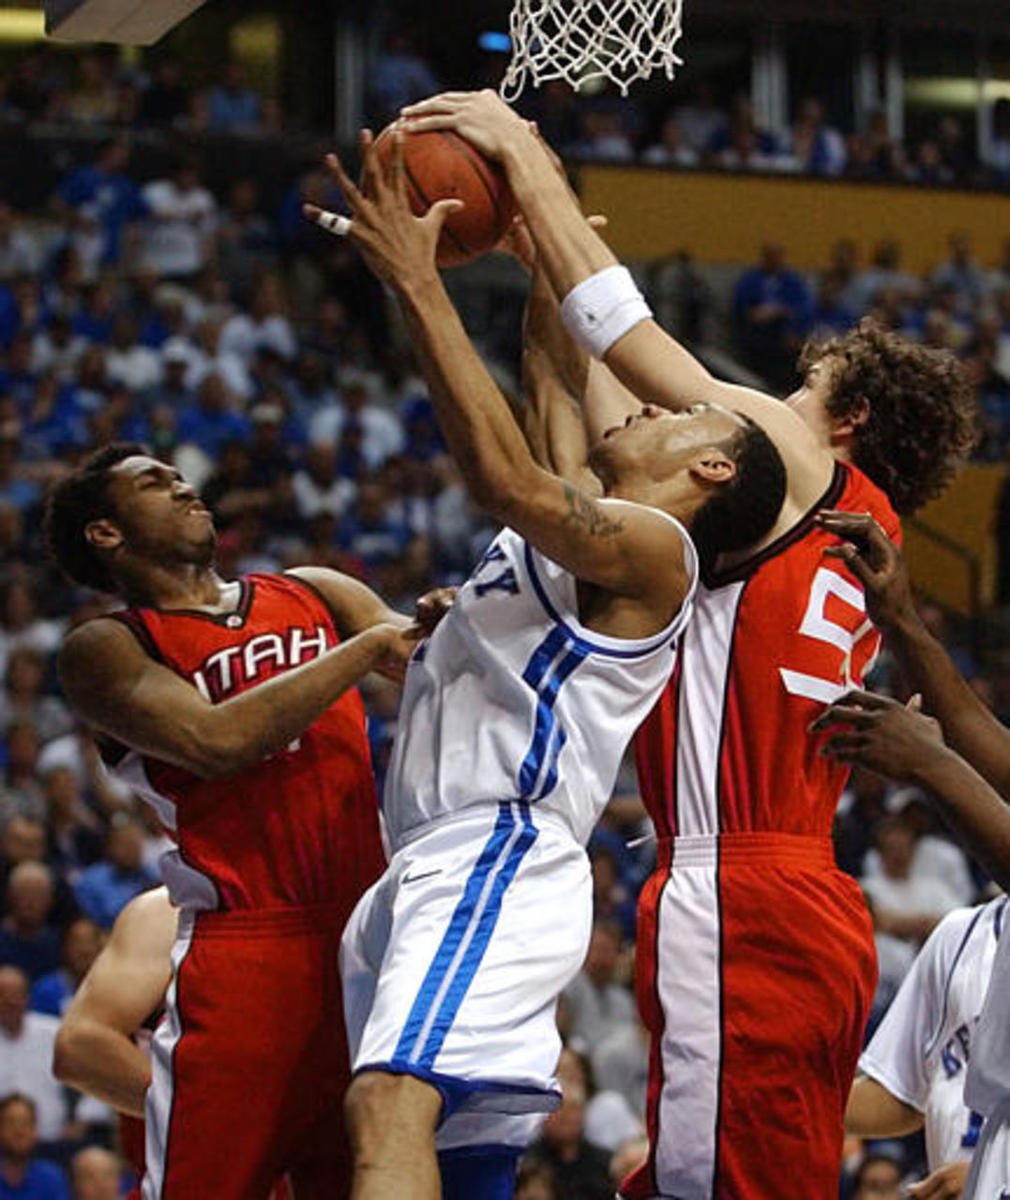 Kentucky guard Gerald Fitch, center, fights for a rebound with Utah's Tim Drisdom, left, and Tim Frost, right, at the NCAA Midwest Regional basketball tournament on Sunday, March 23, 2003, in Nashville, Tenn.